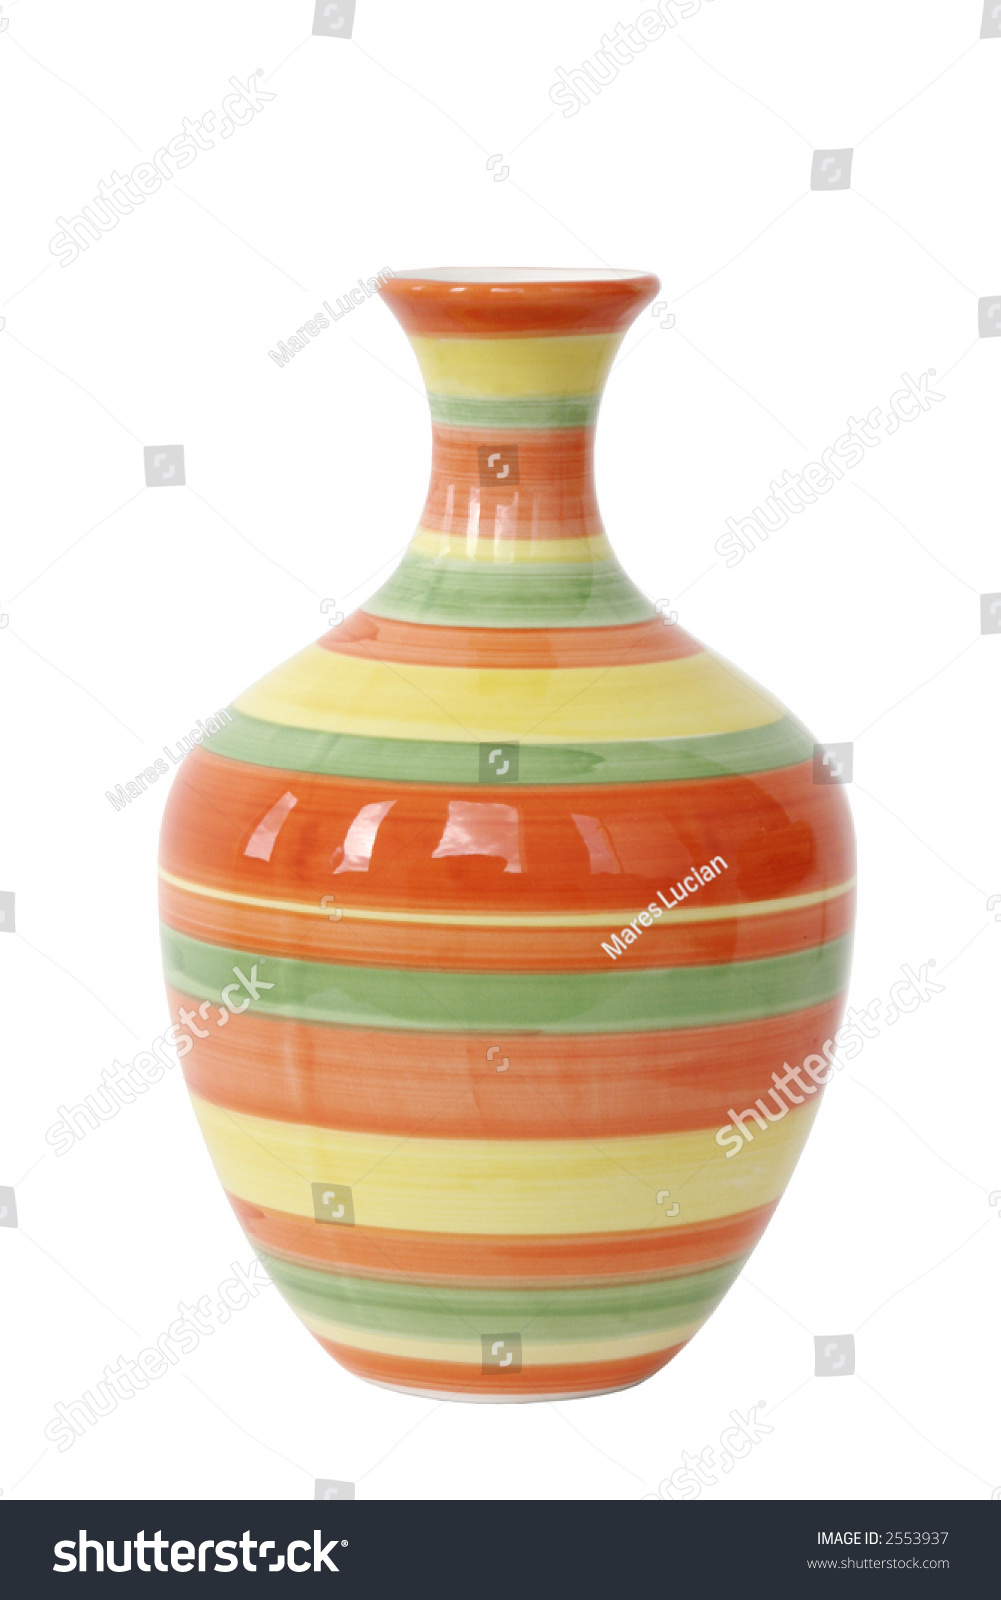 Empty Flower Vase With Circles Stock Photo 2553937